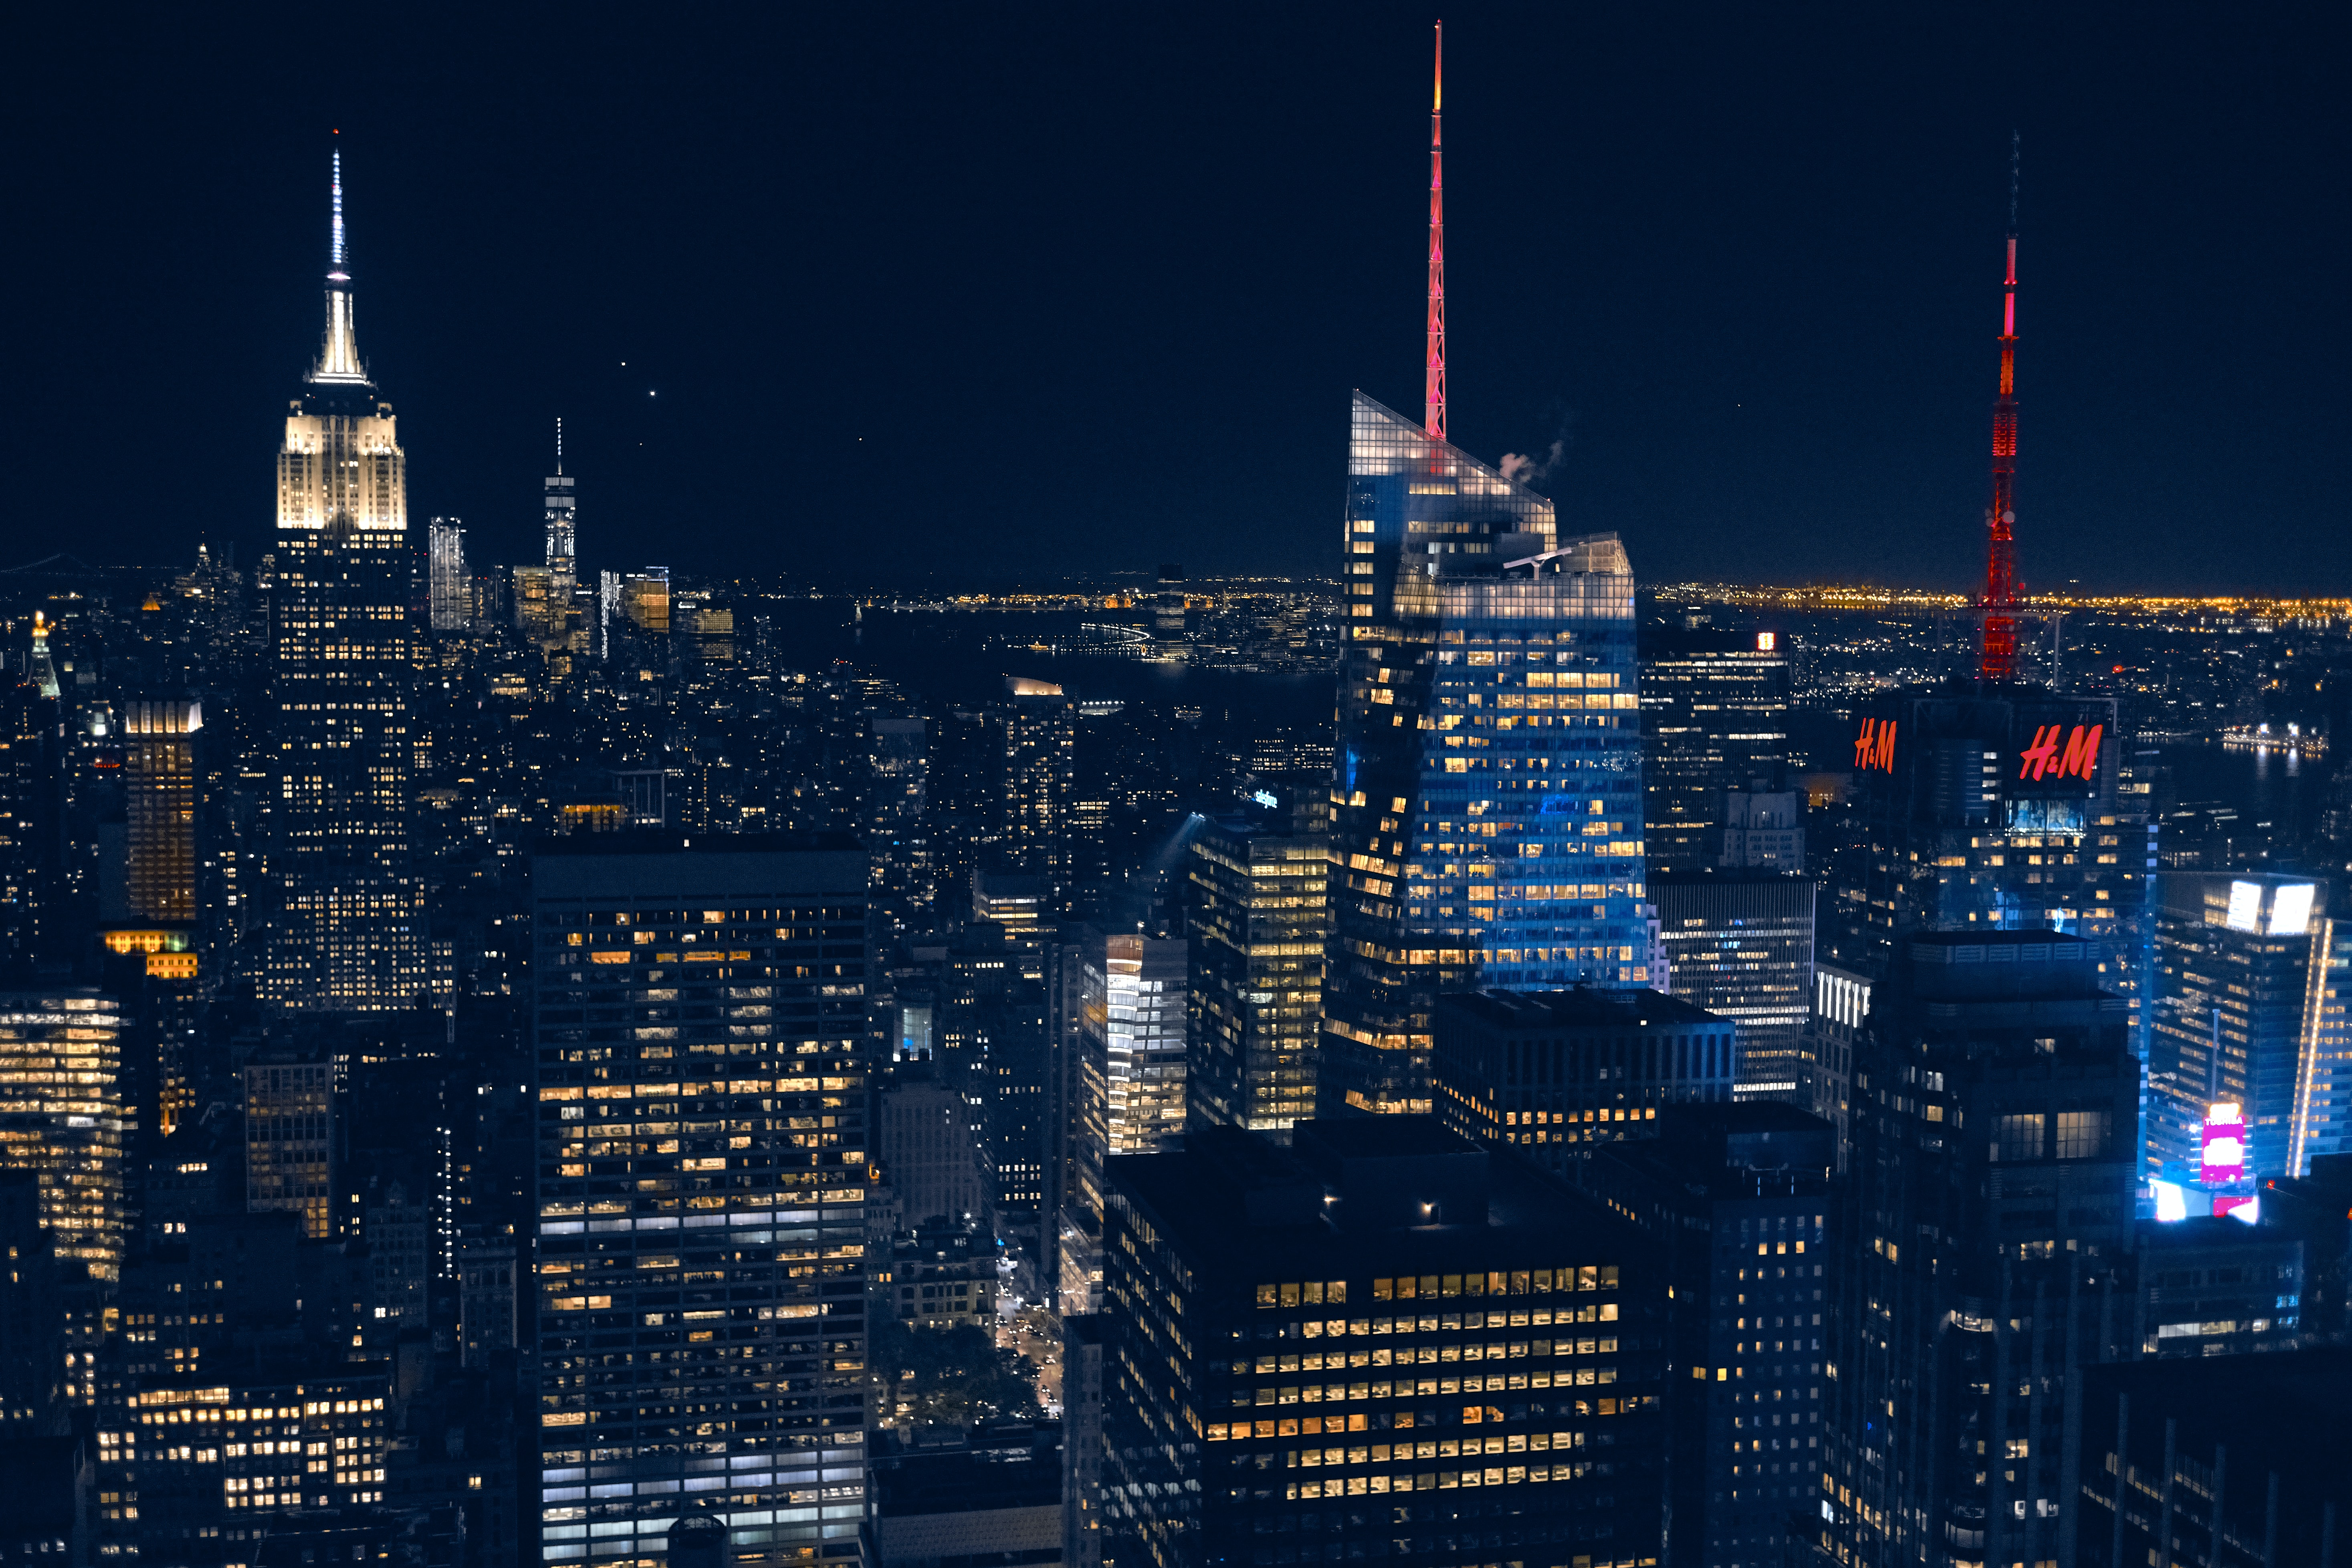 The New York City Skyline and skyscraper lights in the dead of night